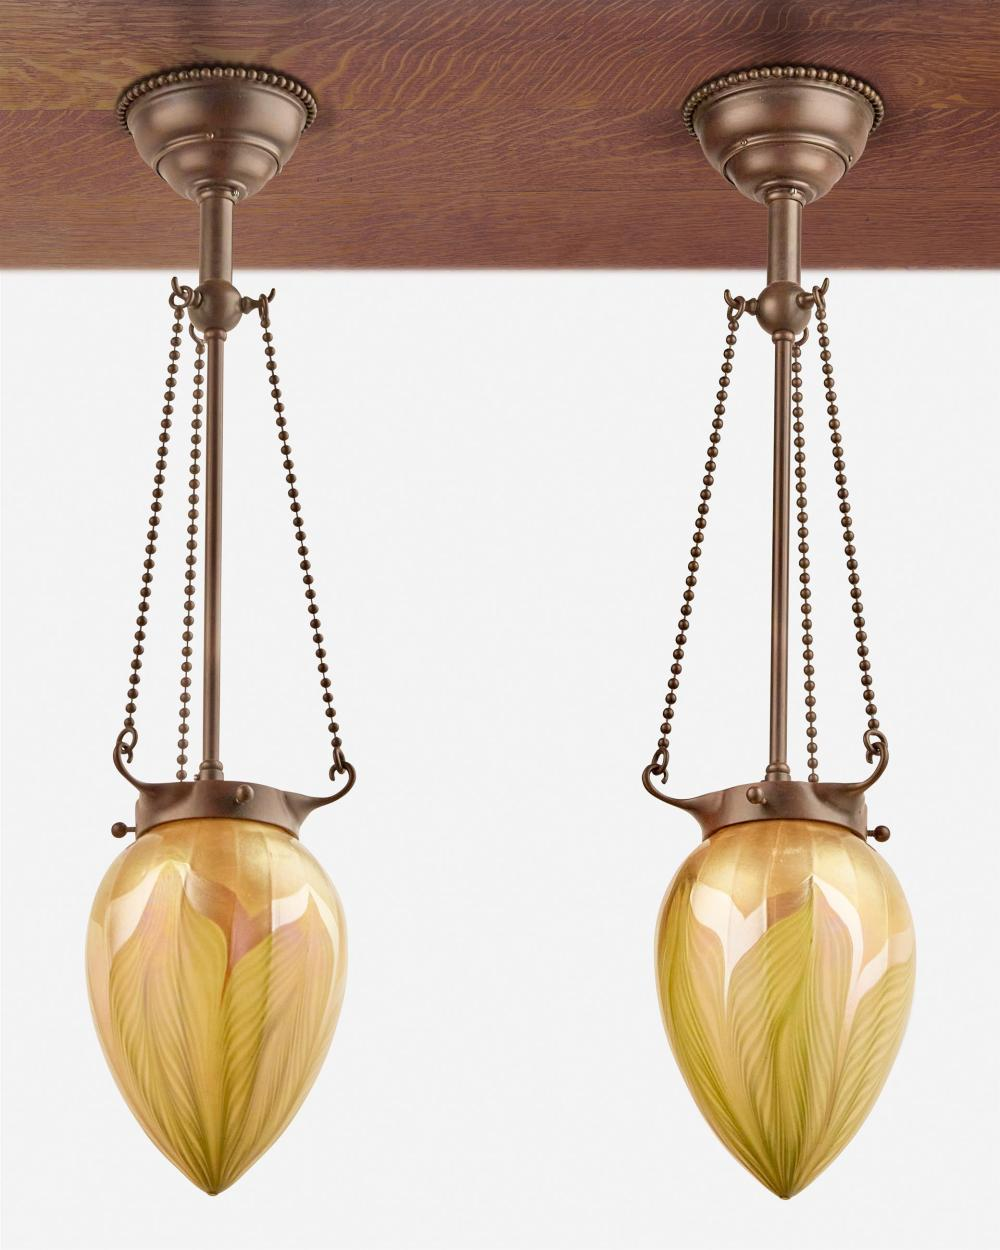 A pair of L.C. Tiffany Favrile glass pendant lights